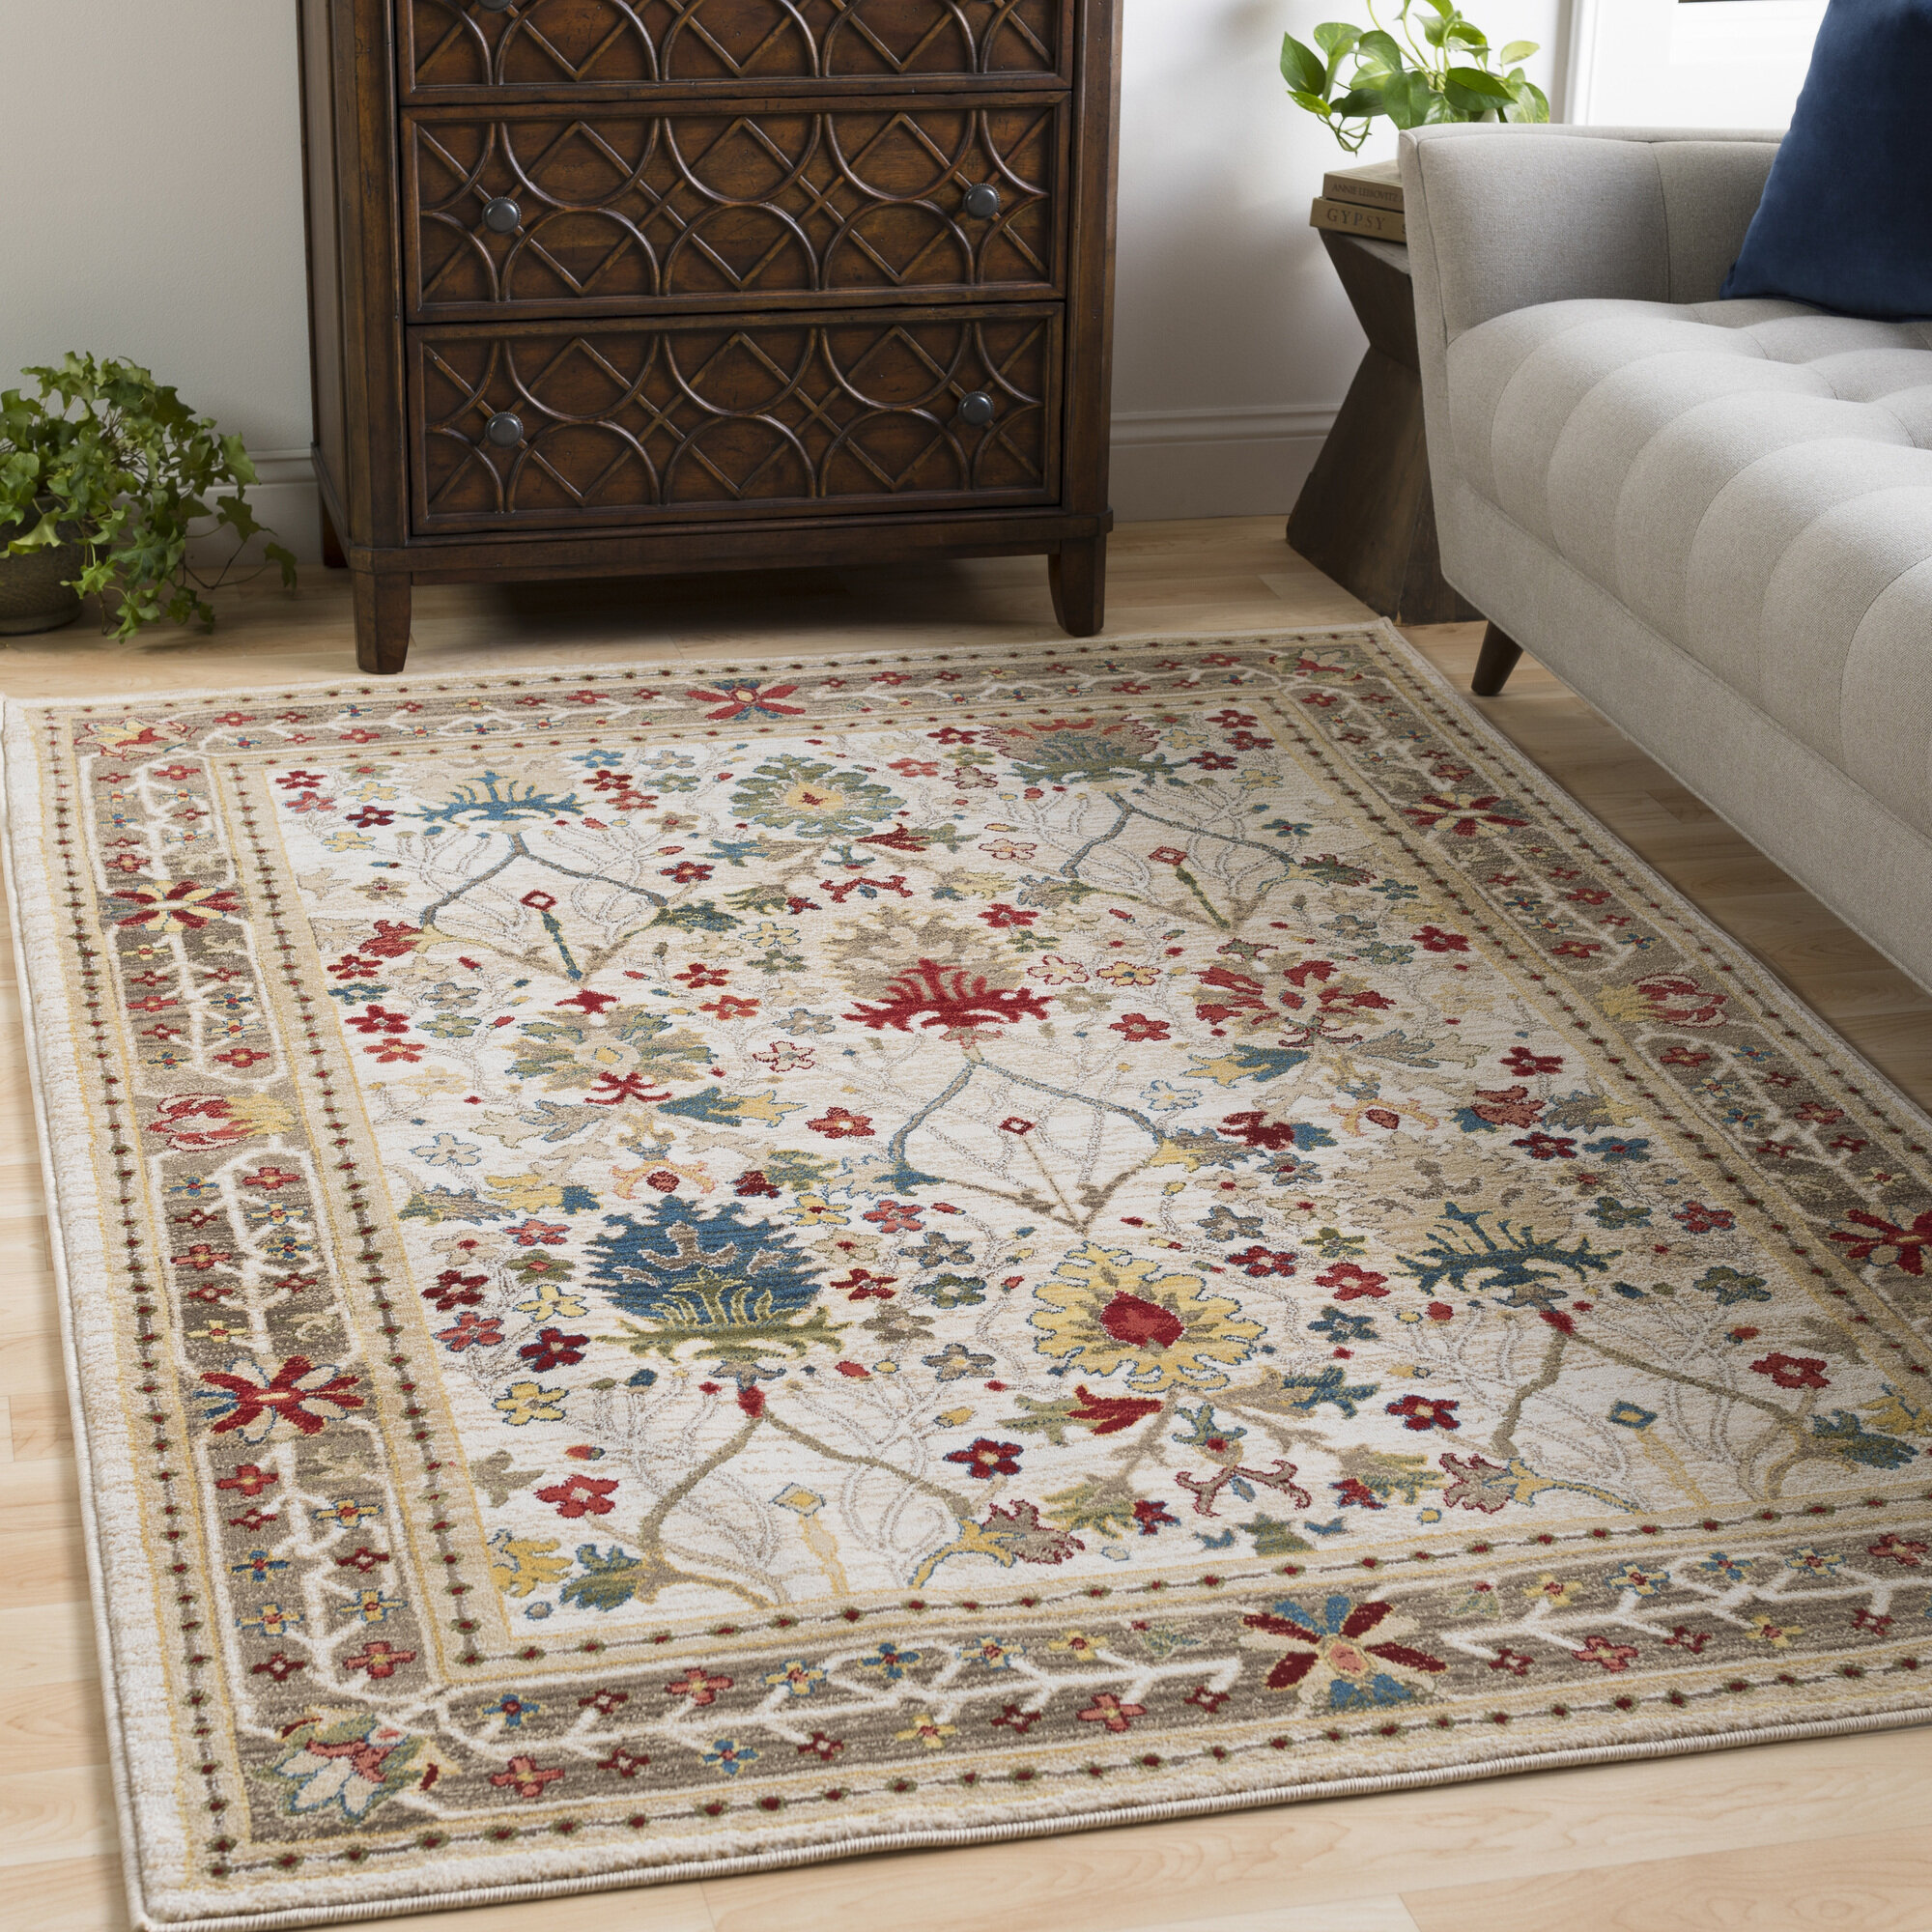 Brown Tan Floral Plant Area Rugs You Ll Love In 2021 Wayfair